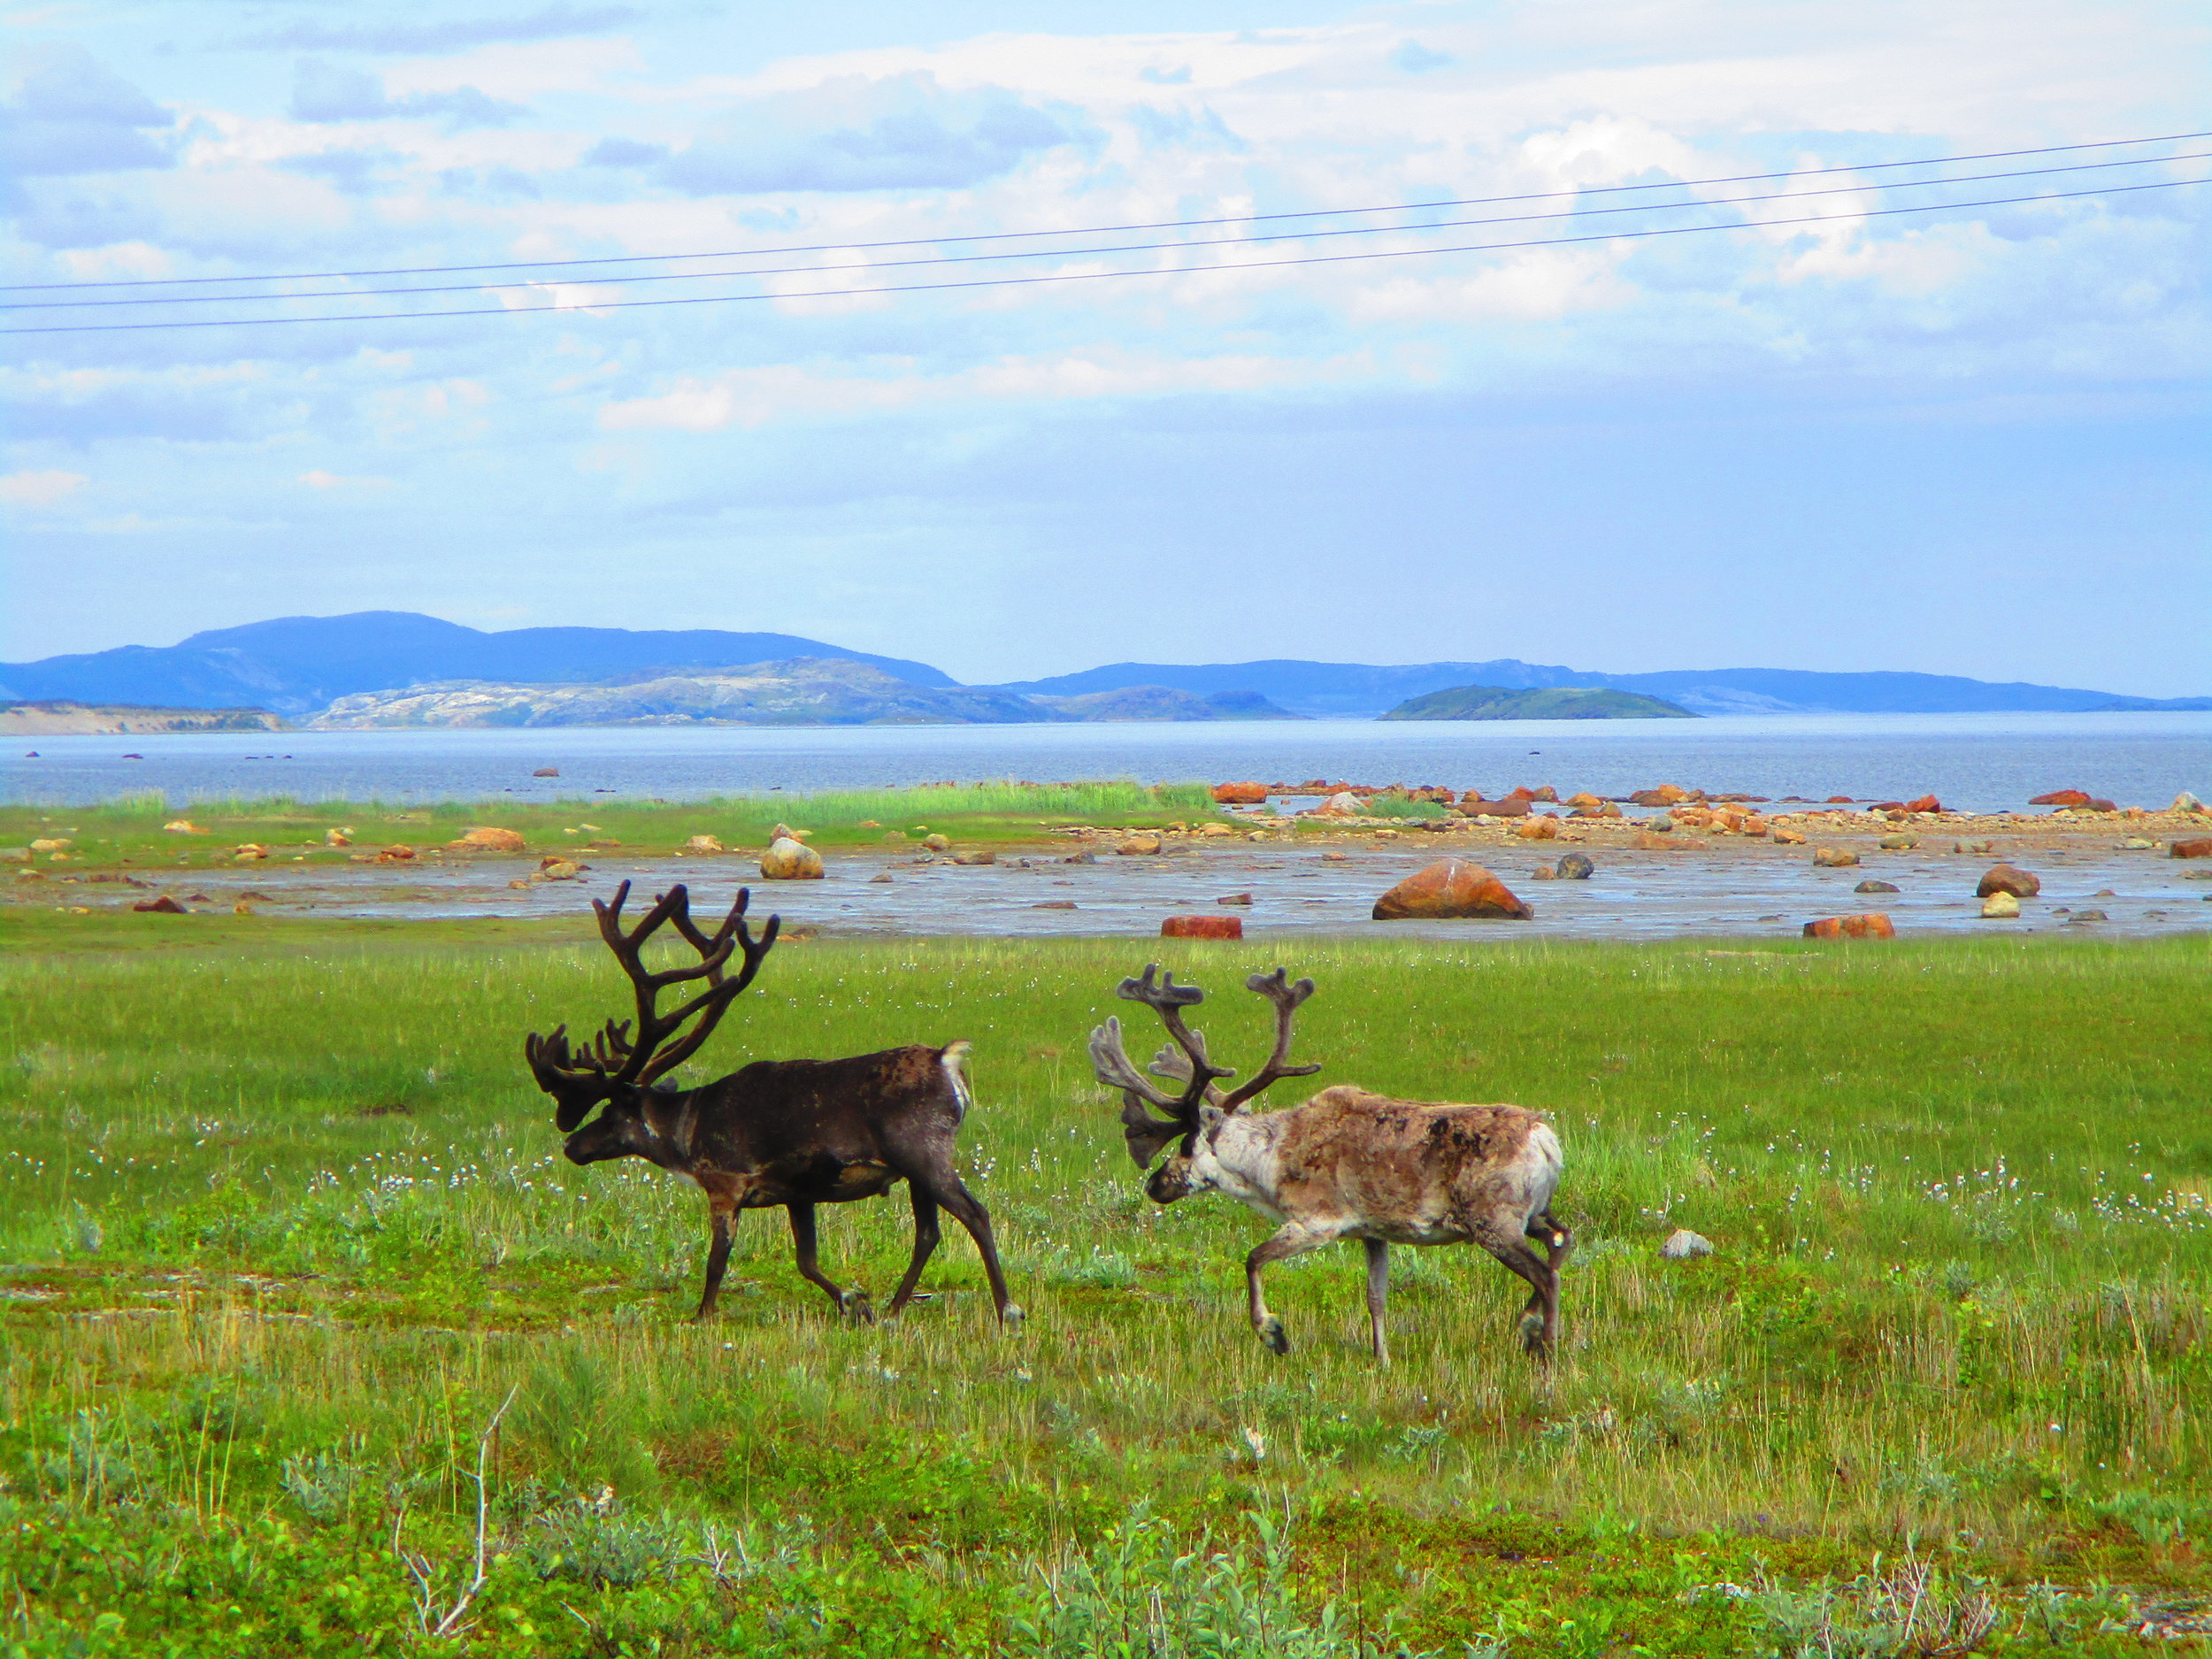 These are special reindeers - they're Santa's - taking a holiday before the Christmas season.